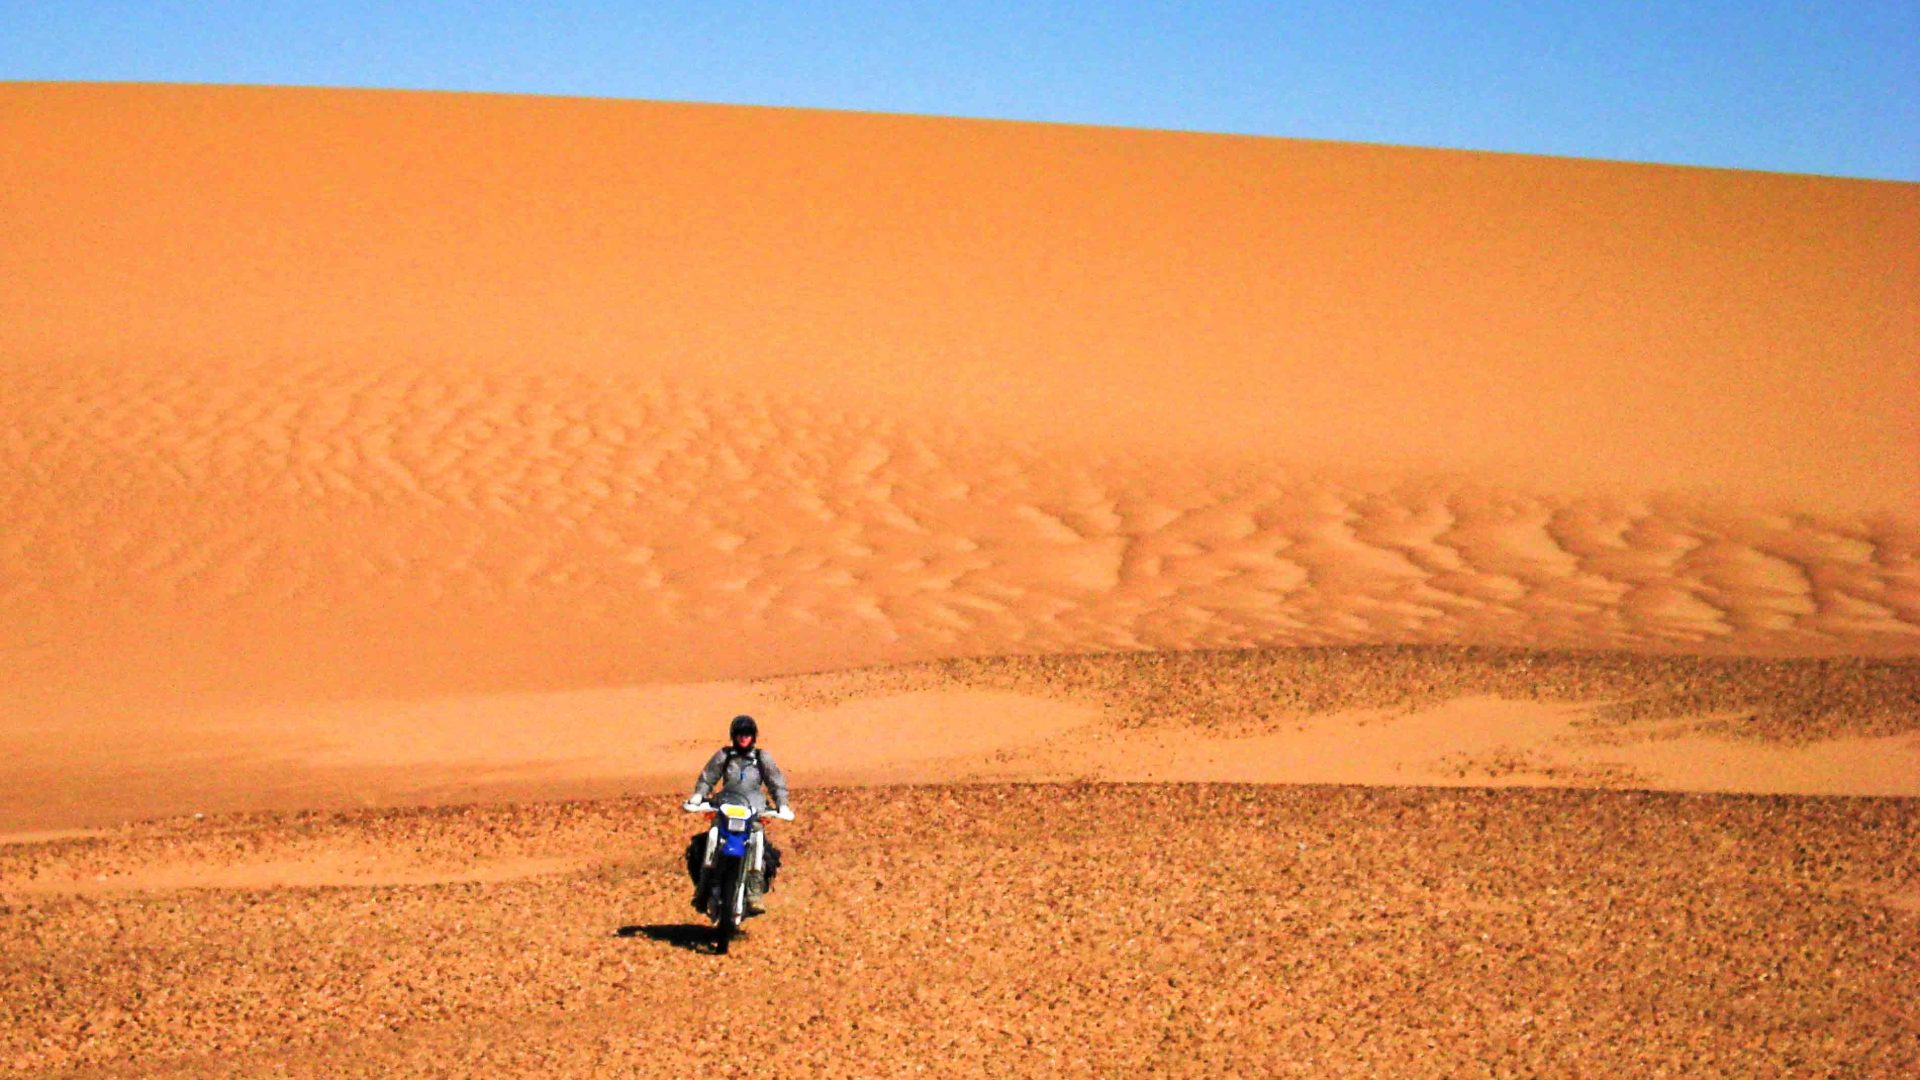 Lois rides her motorcycle across orange sand dunes in Niger.